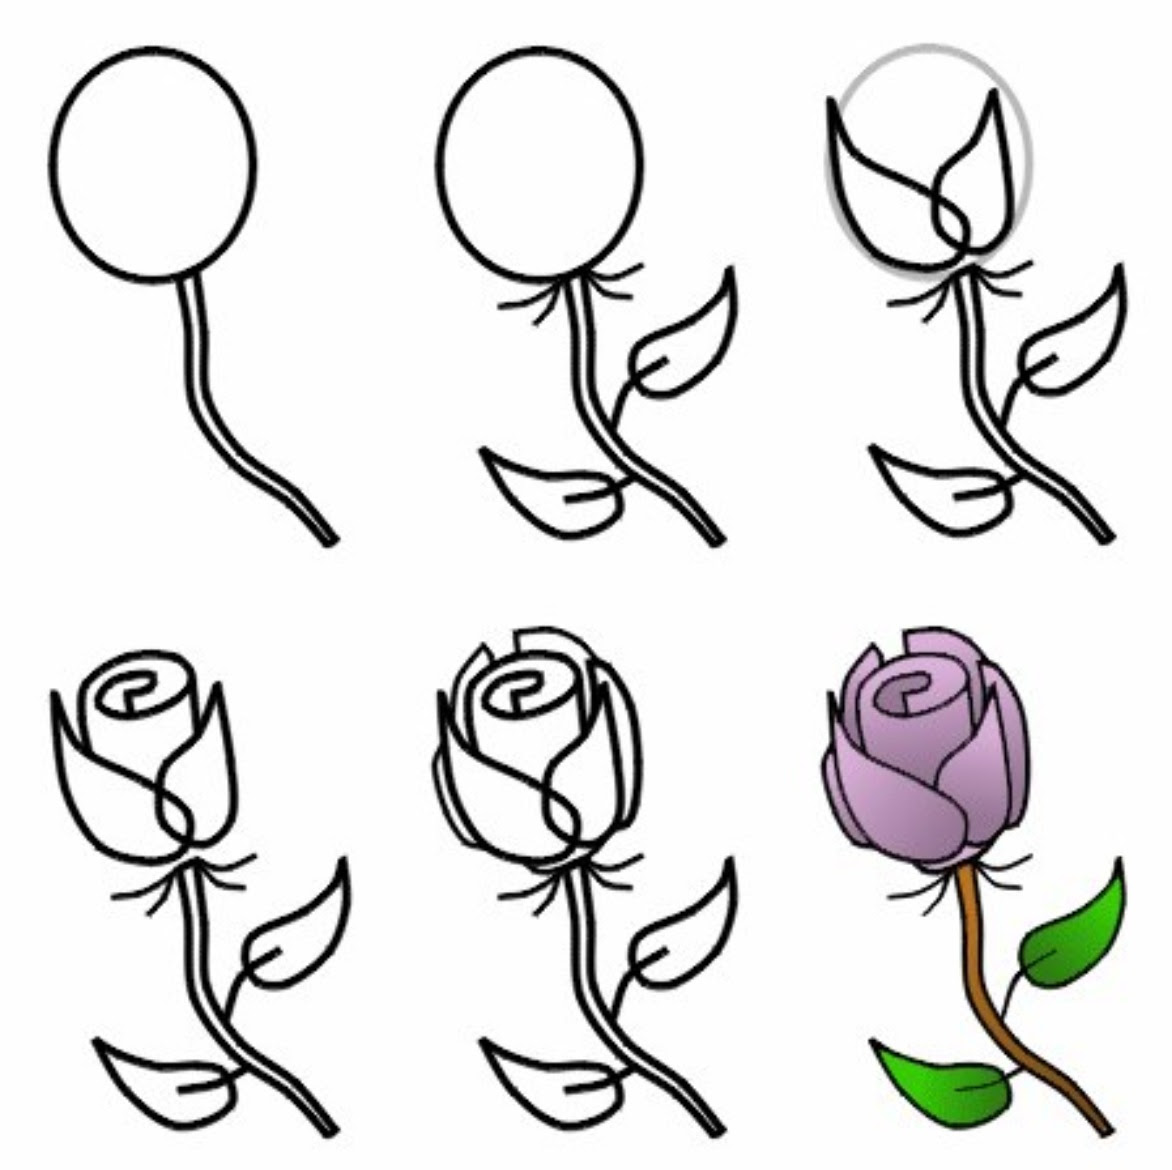 How To Draw A Simple Rose For Kids